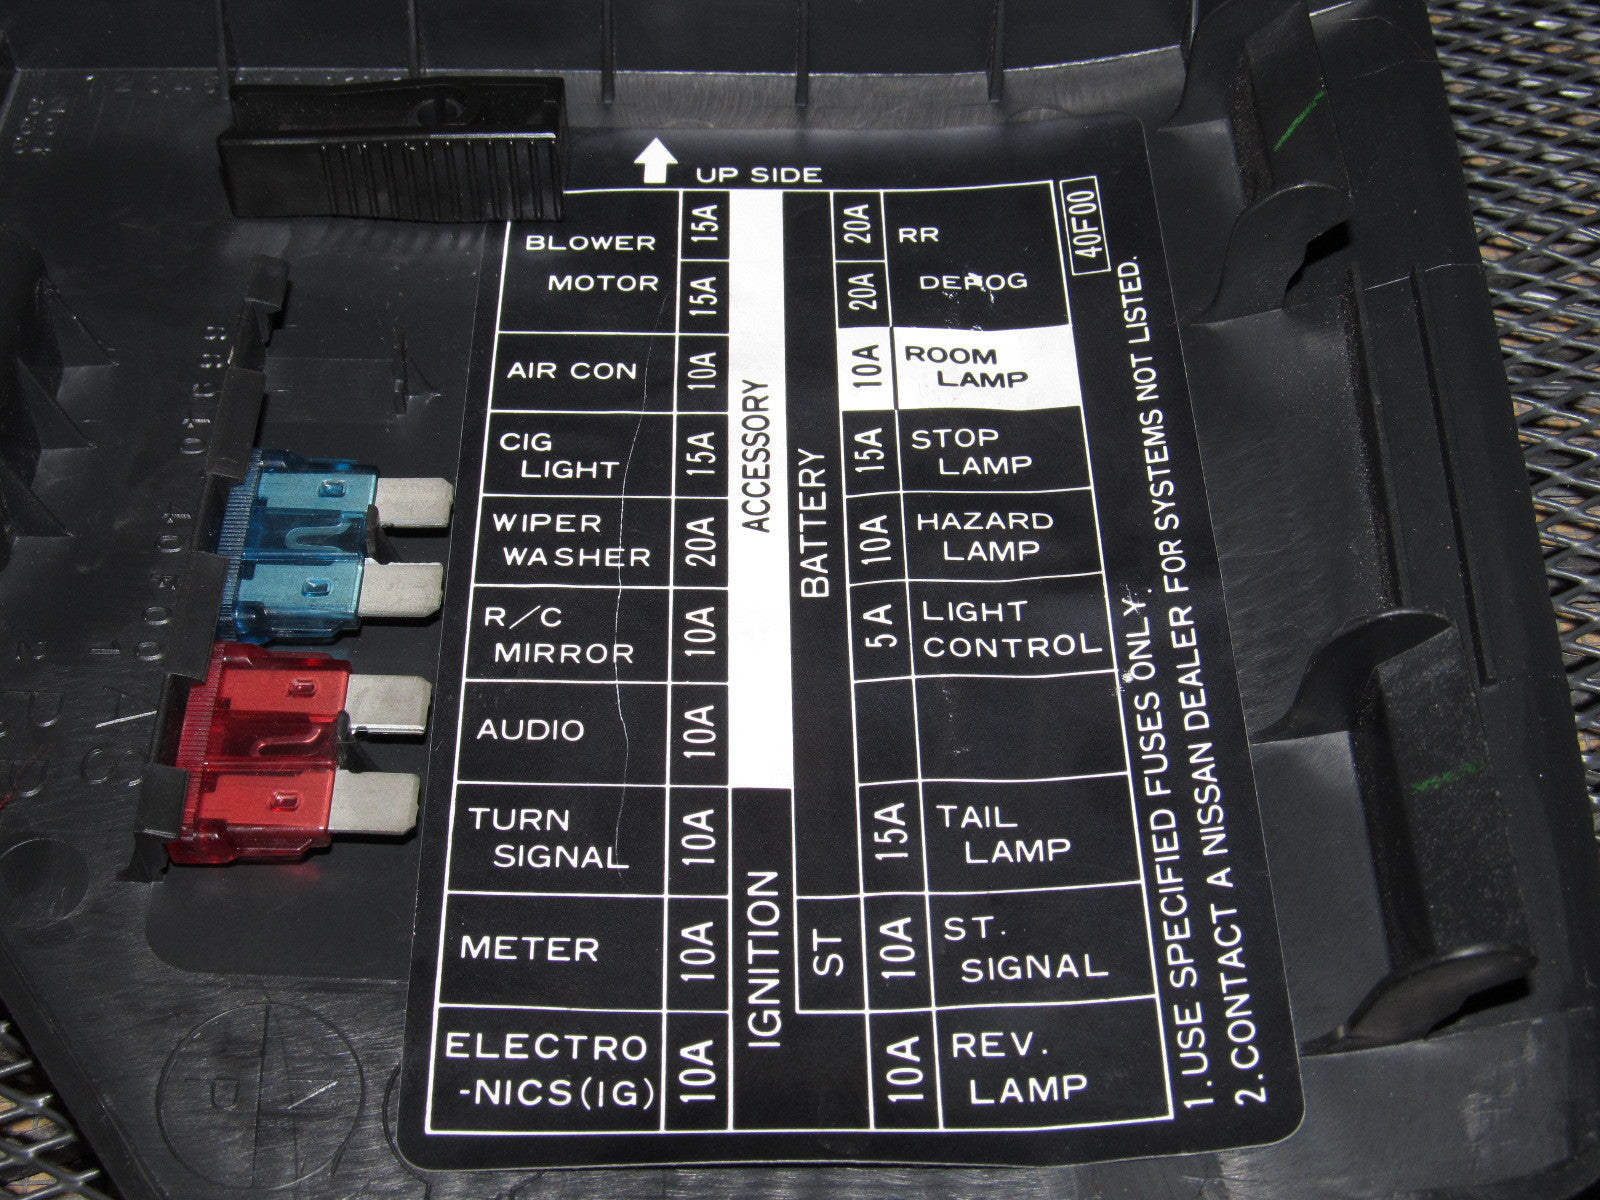 1995 240sx Fuse Box Diagram Not Lossing Wiring Residential Boxes Diagrams Rh Casamario De